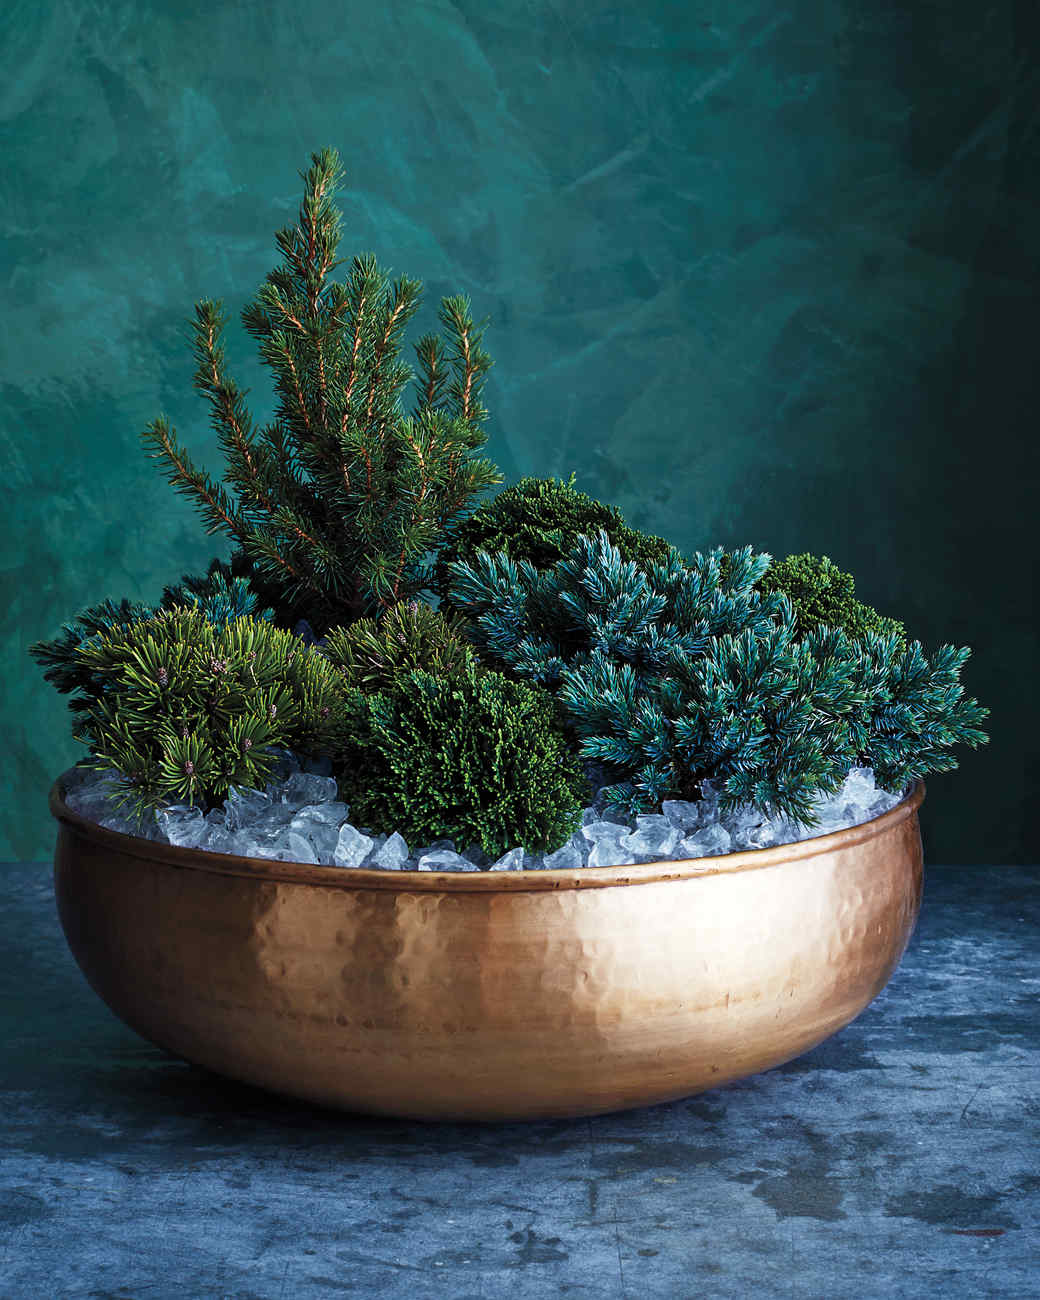 A Cluster of Conifers for a Festive Front Door Arrangement